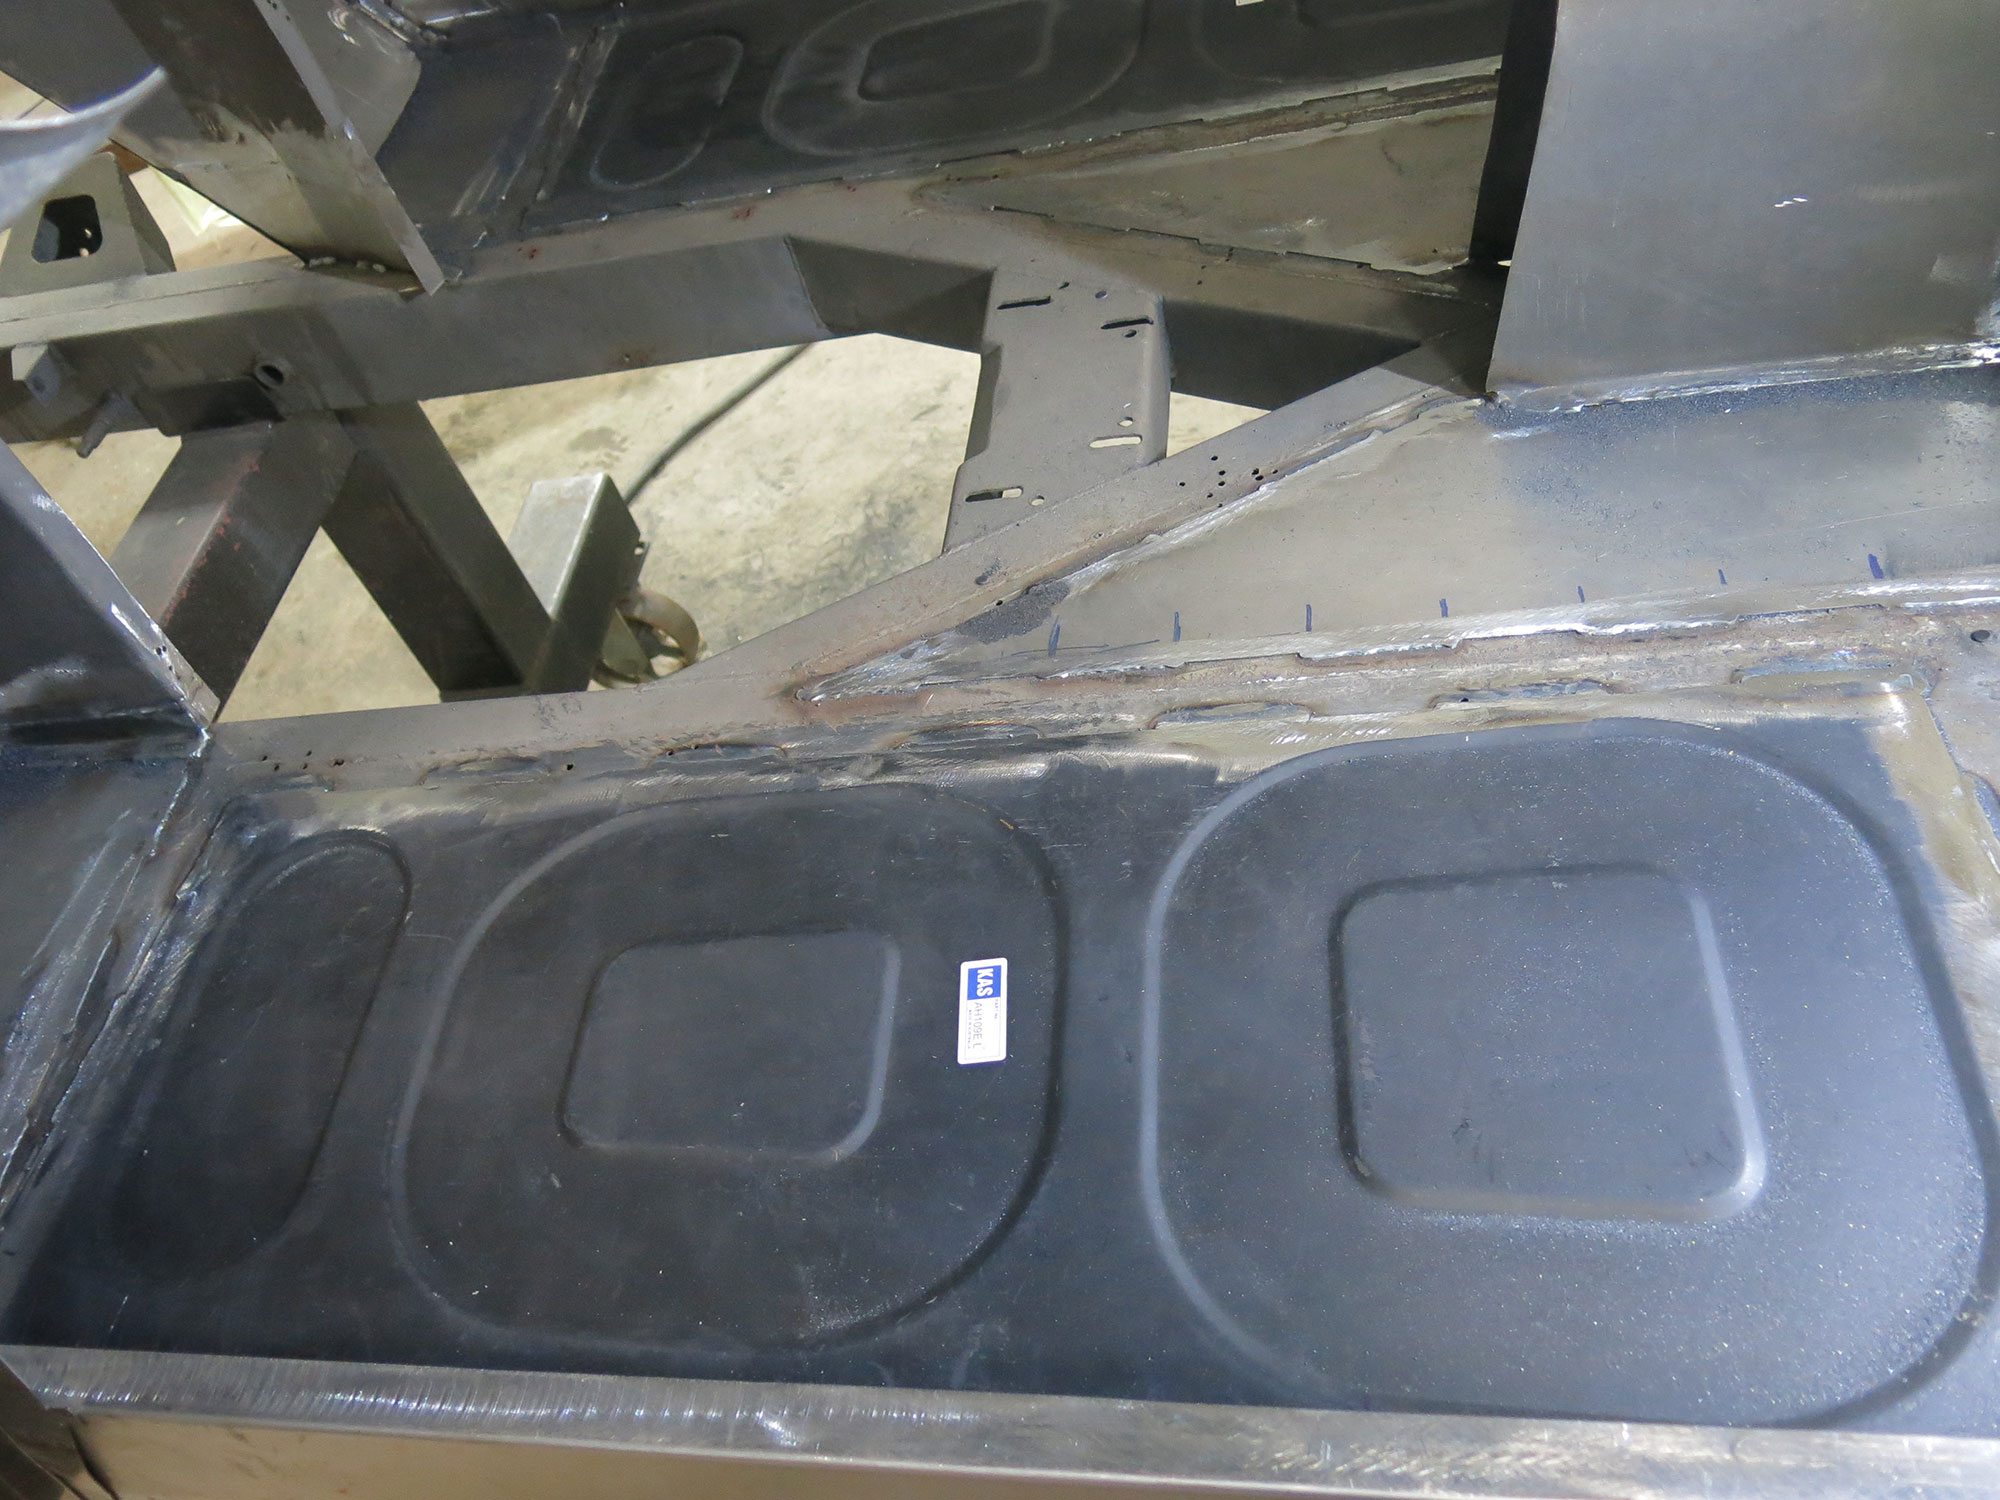 Standard replacement parts could not always be used - The floor panels have a unique '100' pressing